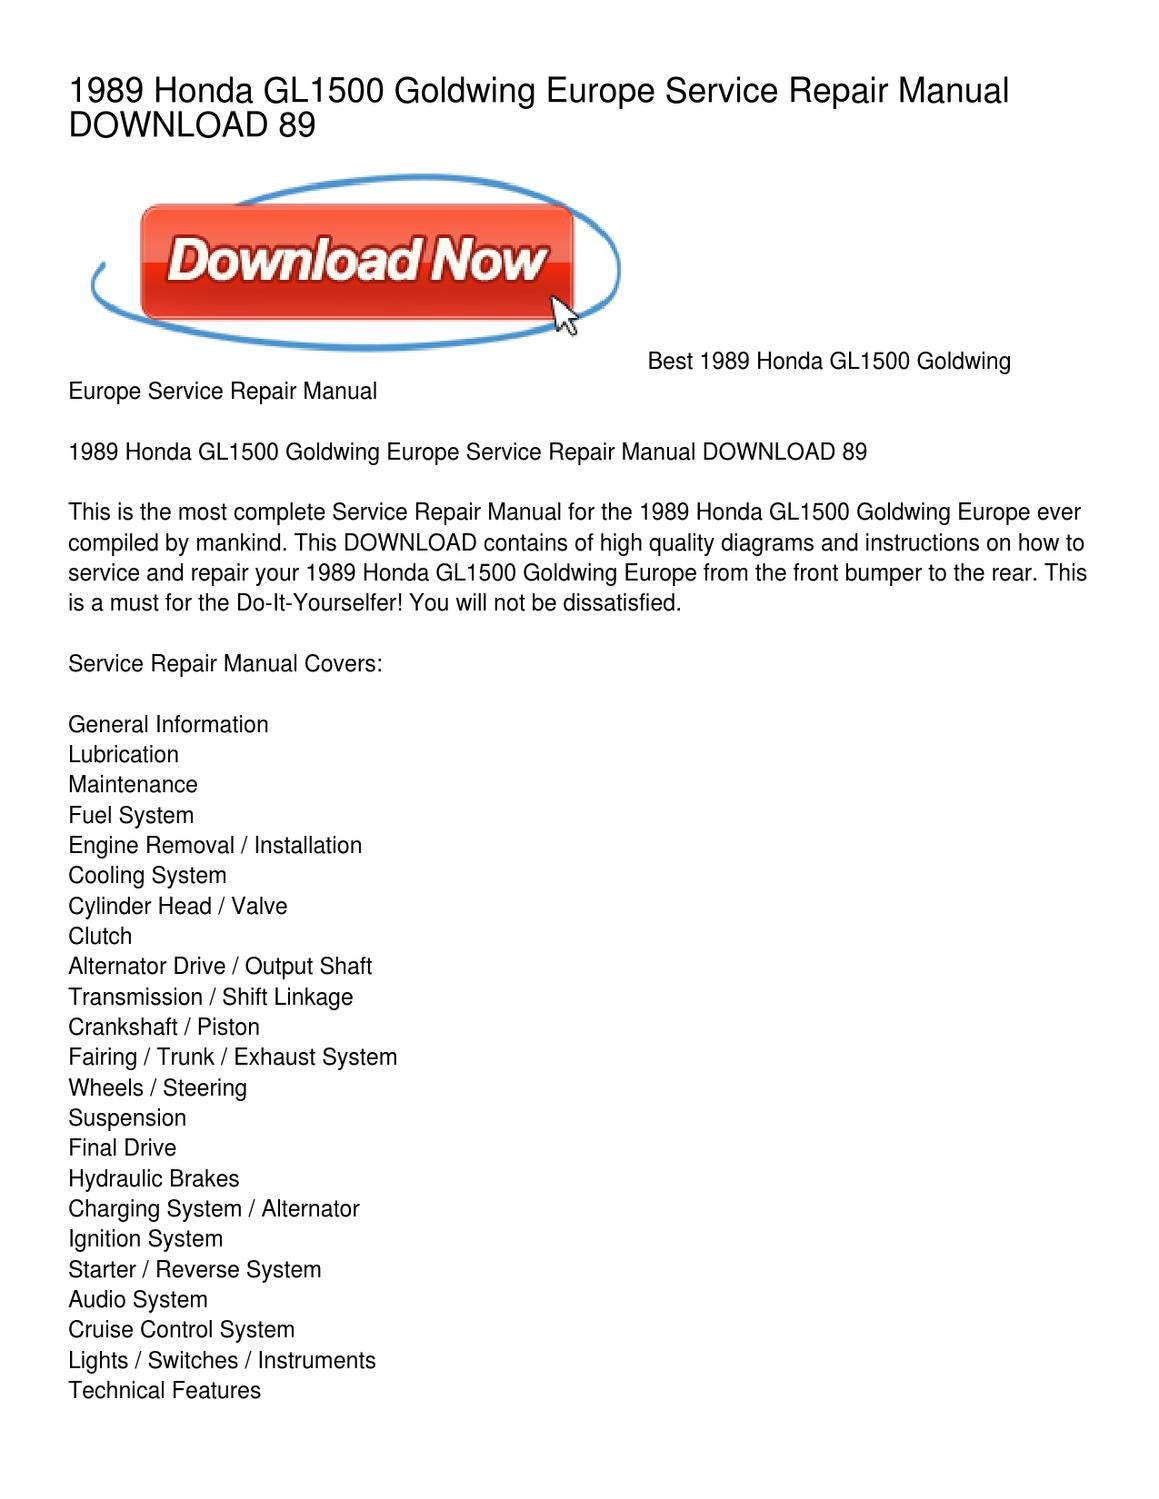 1989 Honda Gl1500 Goldwing Europe Service Repair Manual Download 89 Cruise Control Diagram By Stephen Whitfield Issuu